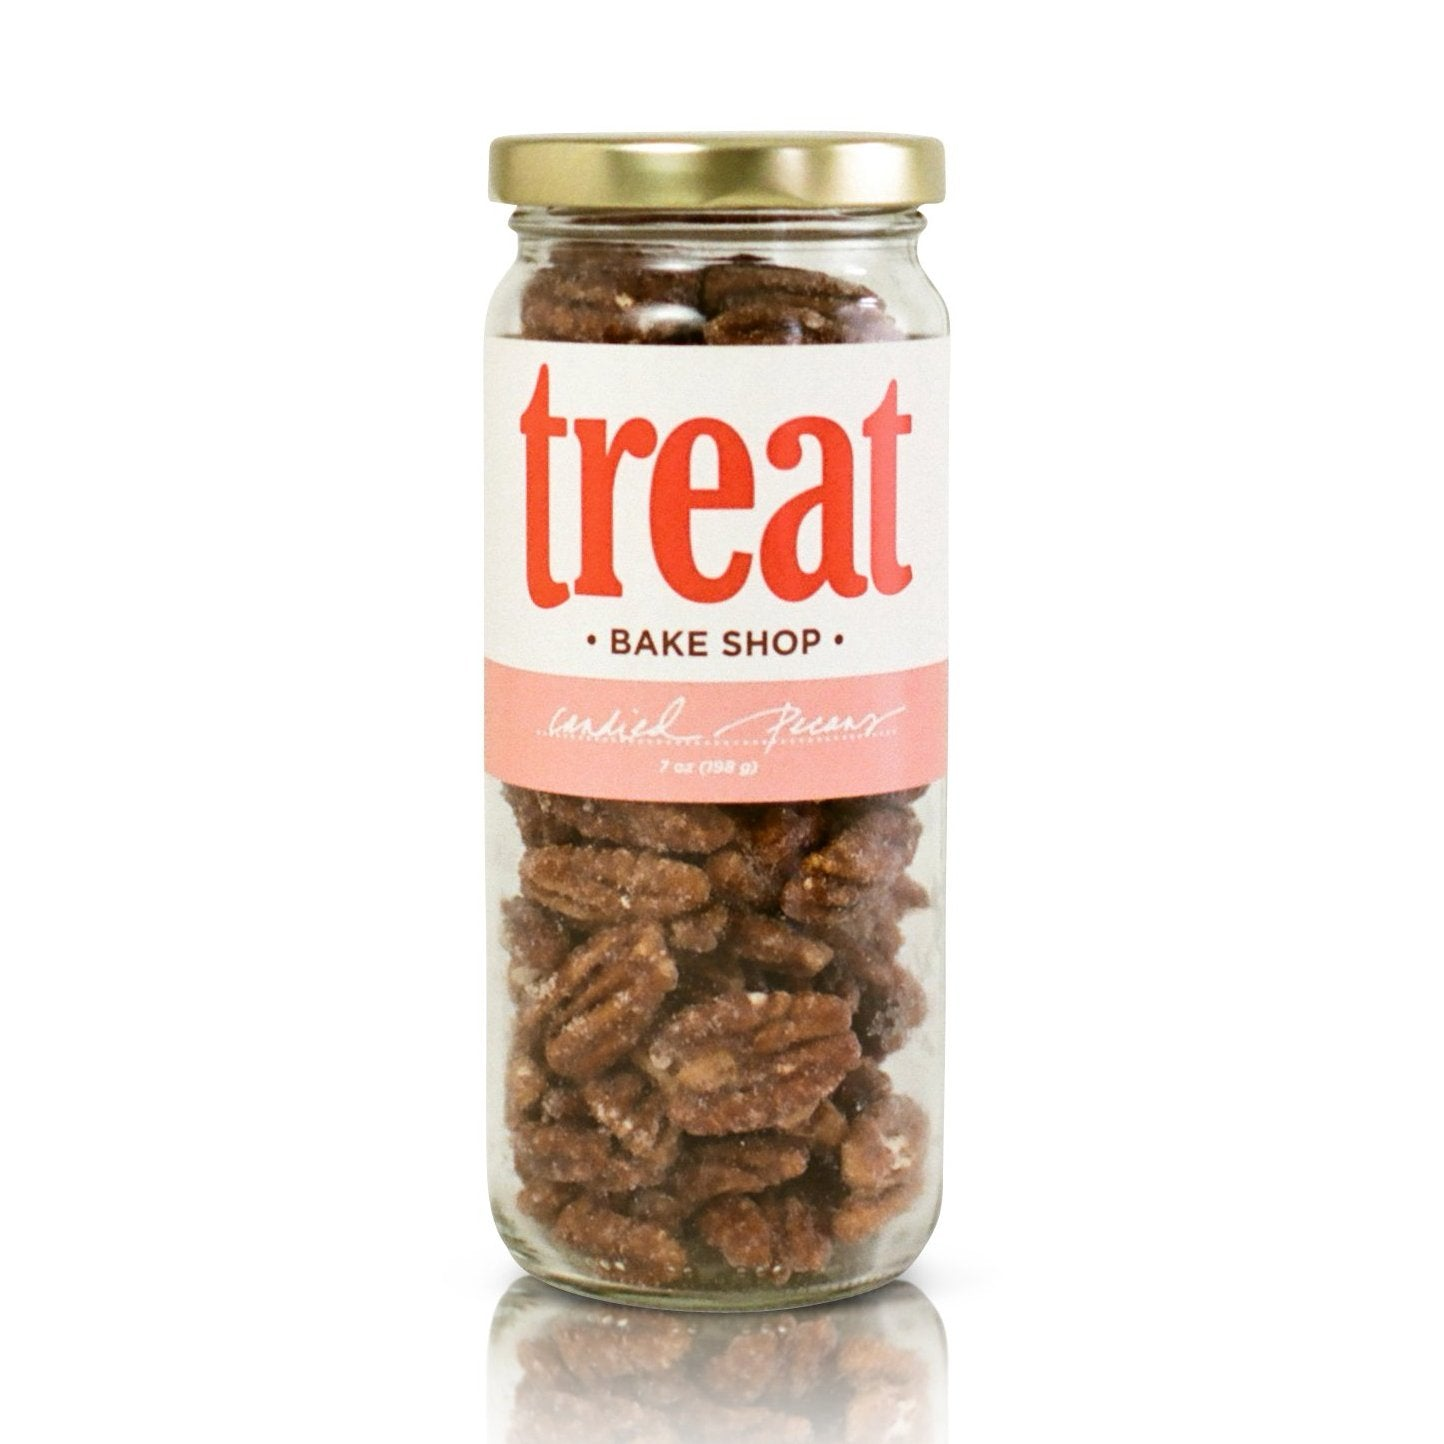 Enjoy candied pecans made in small batches from Treat. Our gourmet nuts explode with flavor and are the perfect gift for any season.